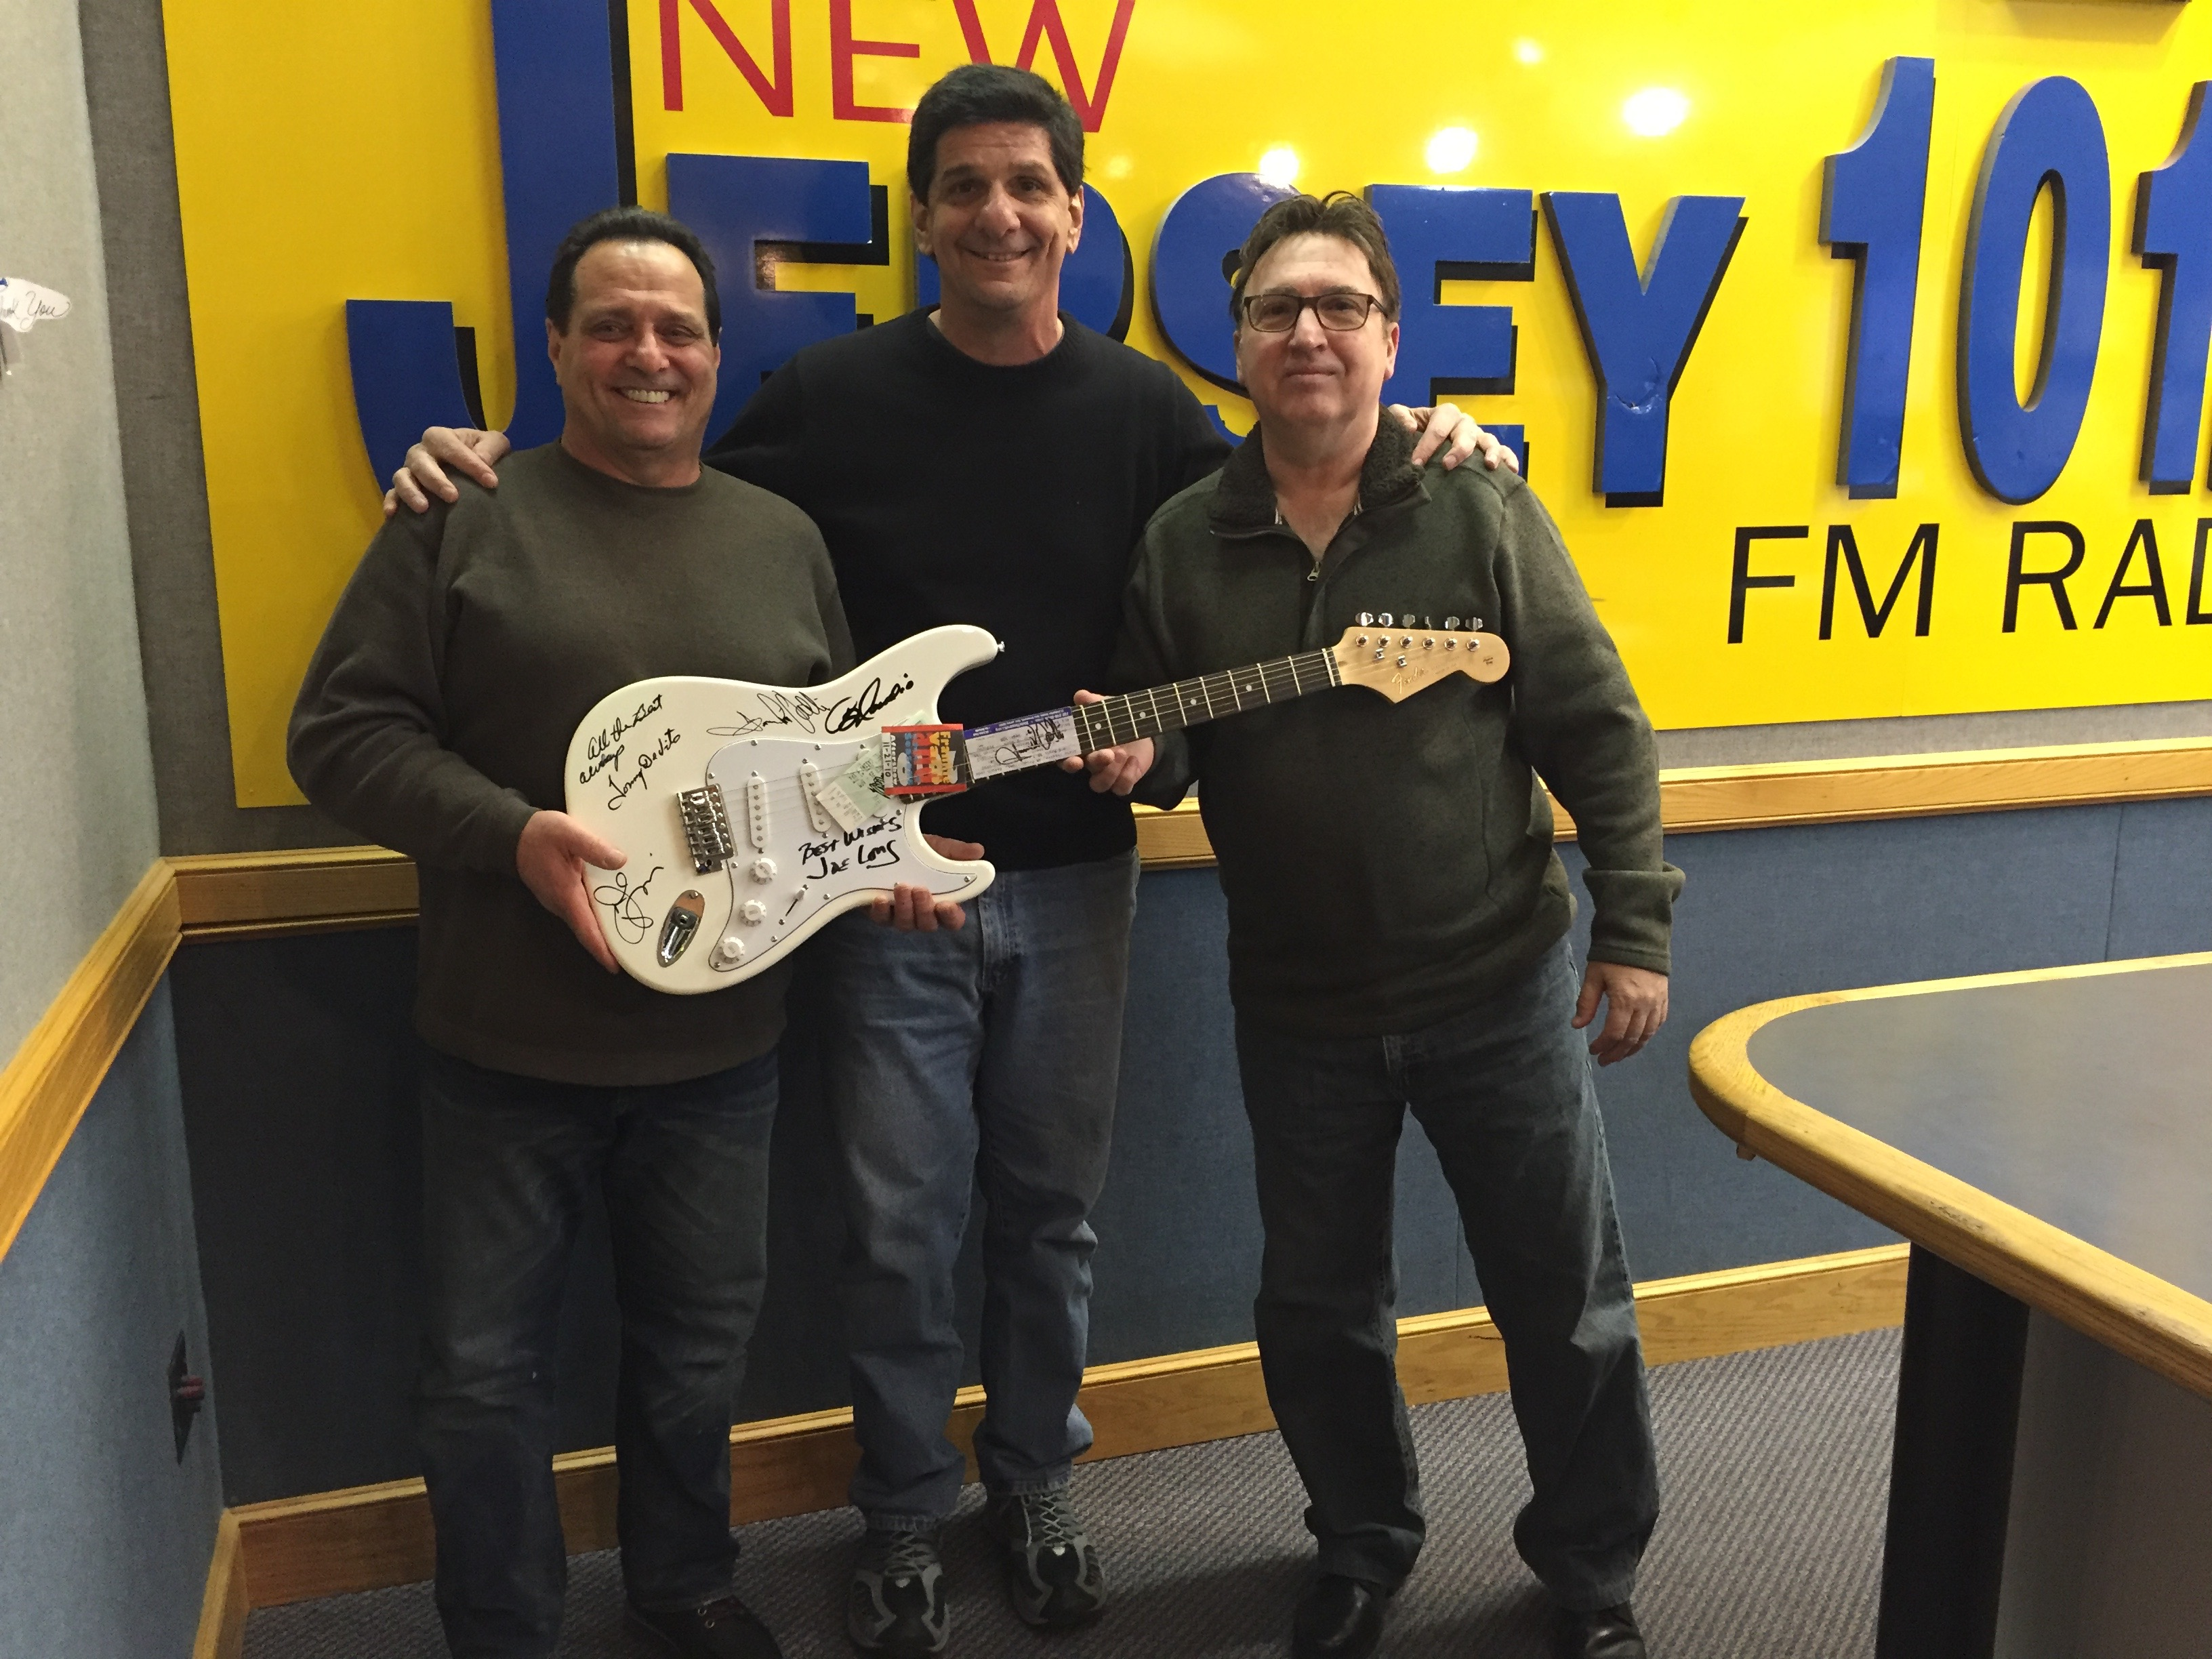 Jersey Four & Steve Trevelise of New Jersey`s 101.5